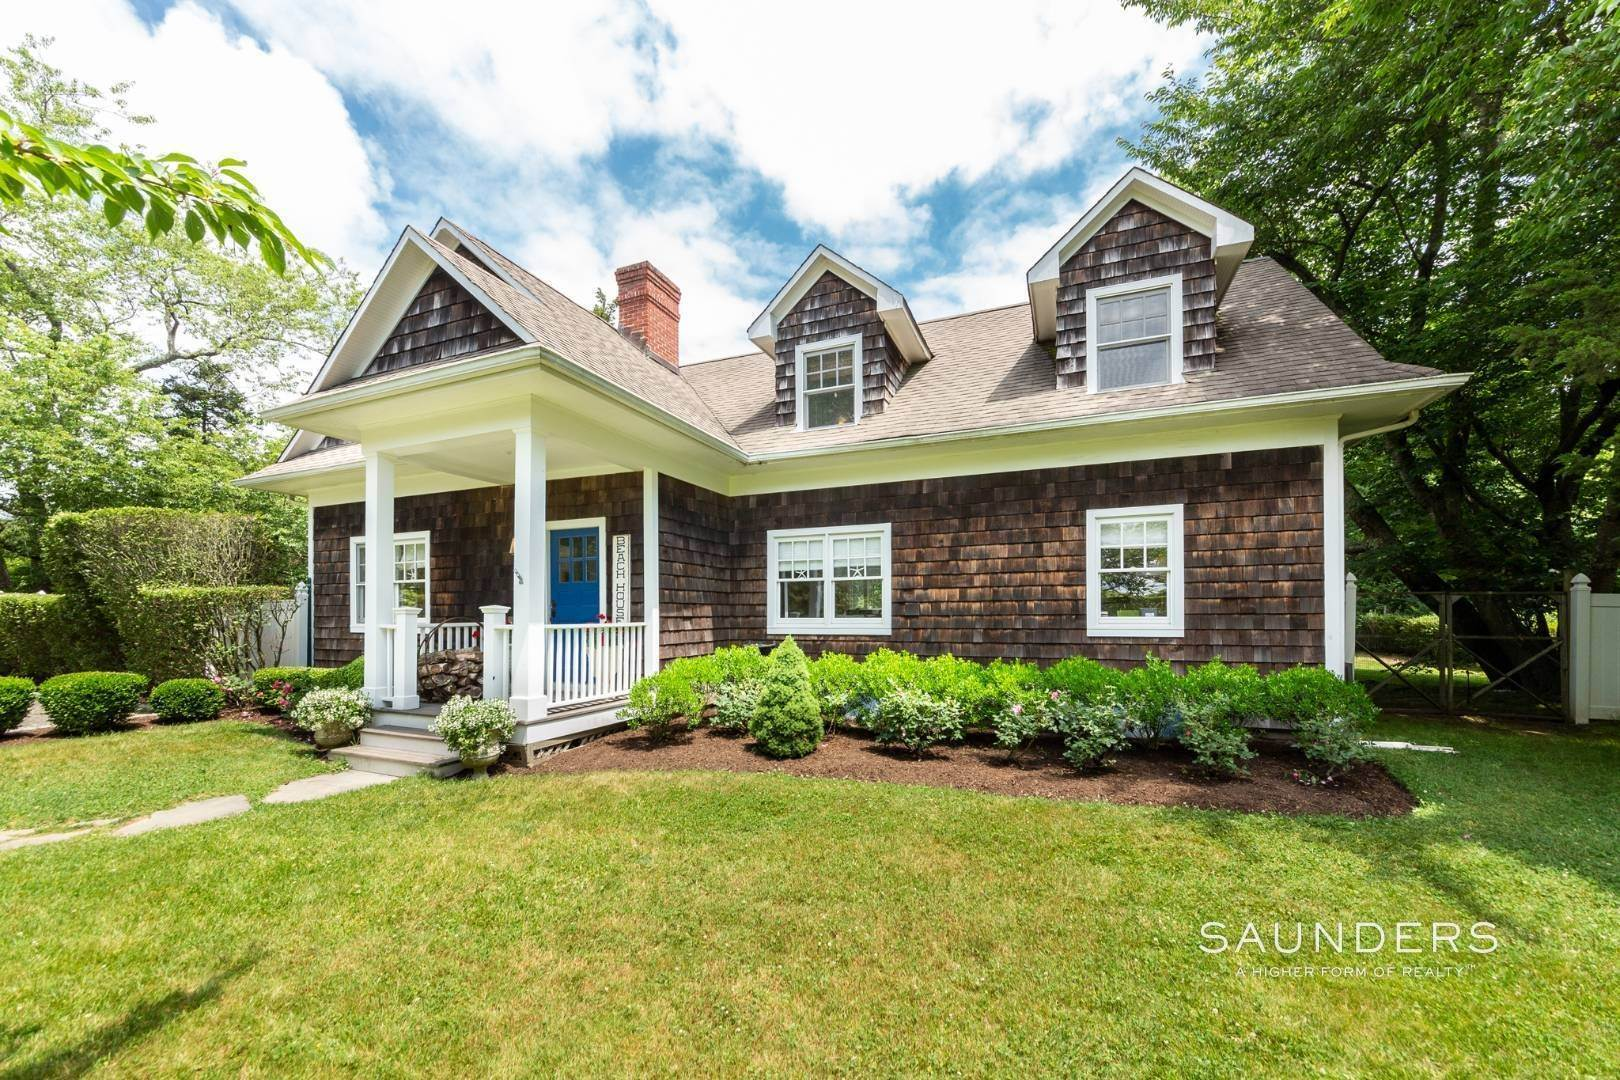 3. Single Family Homes for Sale at Eh Village Edge With Tennis Possible 170 Cedar Street, East Hampton, East Hampton Town, NY 11937